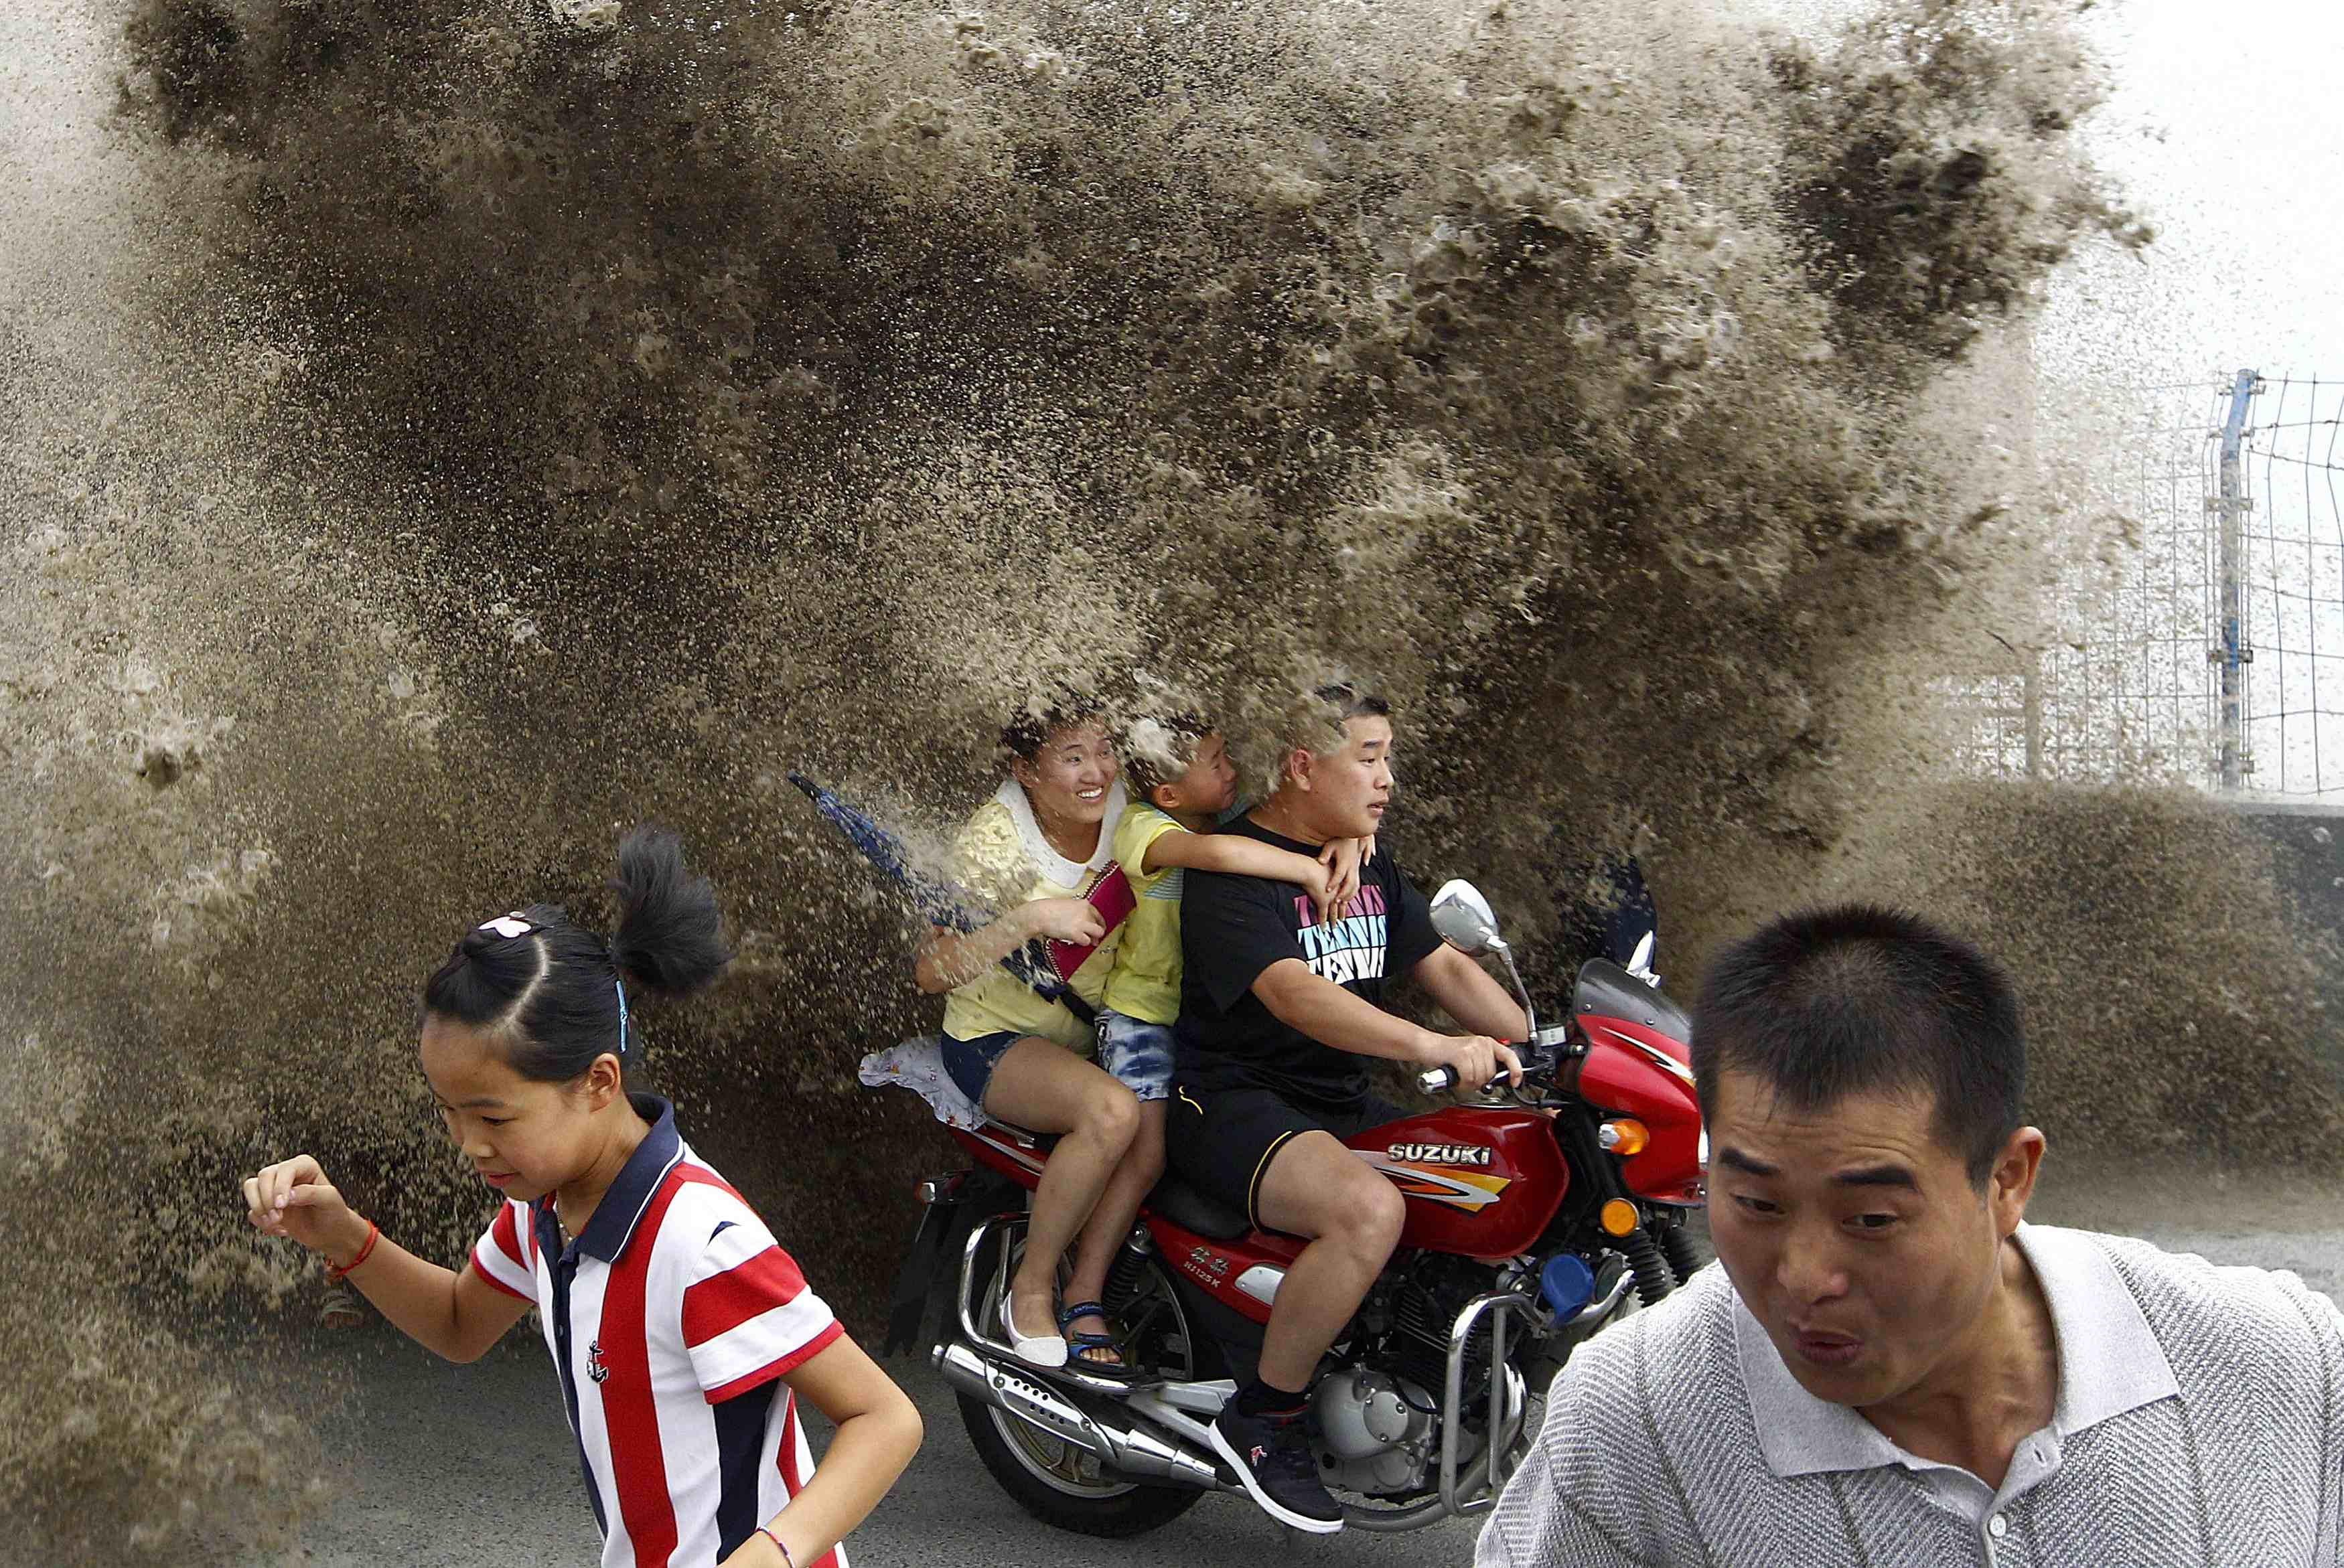 RNPS - REUTERS NEWS PICTURE SERVICE - PICTURES OF THE YEAR 2014